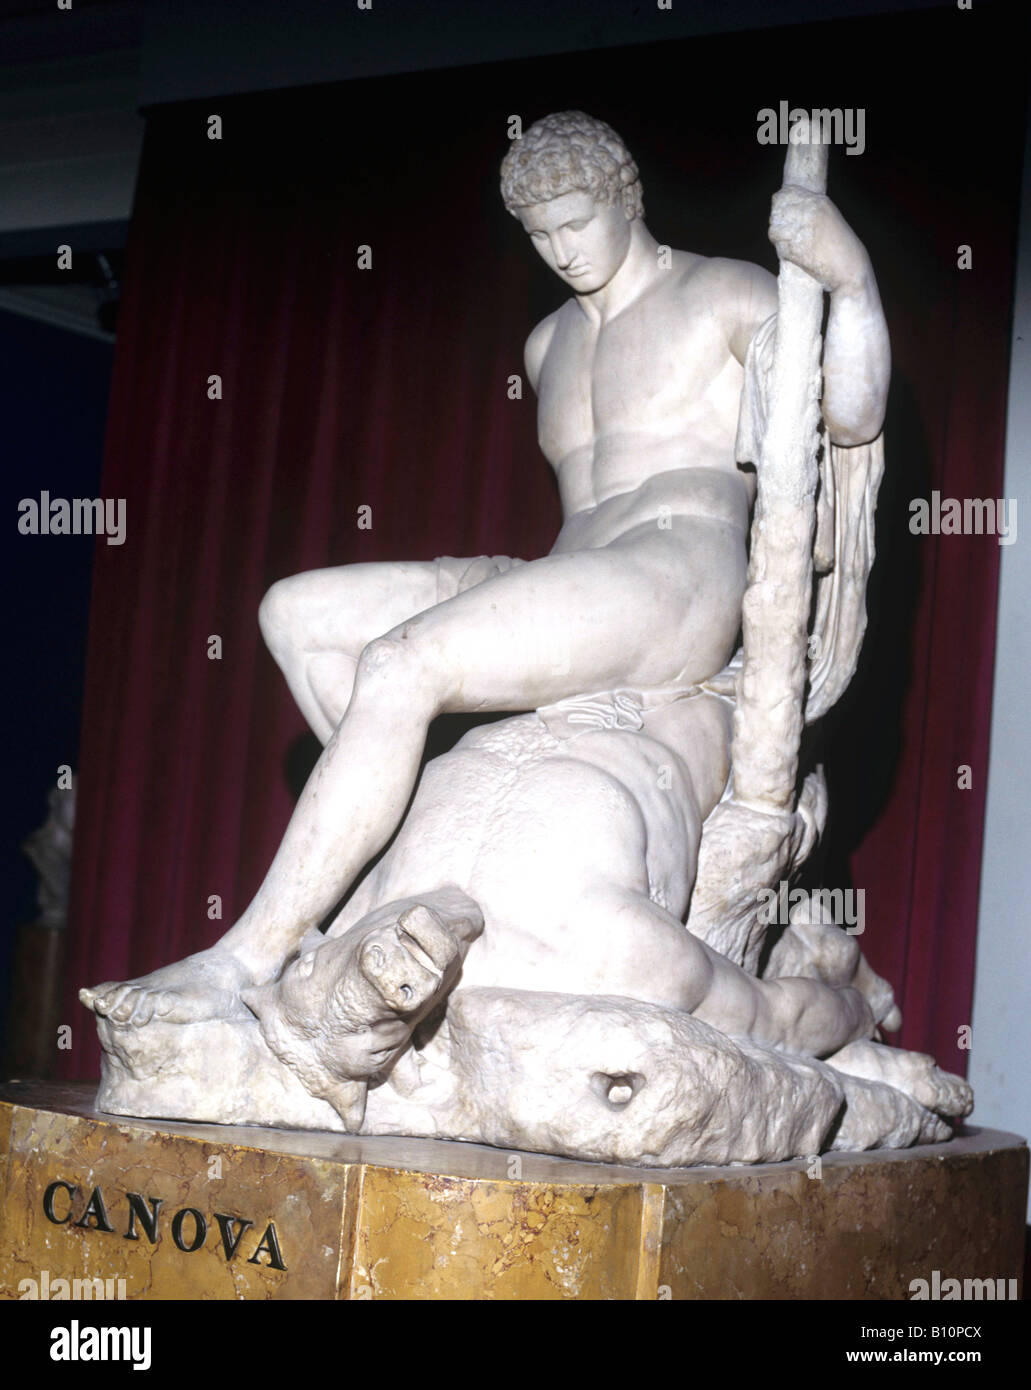 Theseus and the Minotaur by Canova Neo classical sculpture Copyright AAA Collection - Stock Image